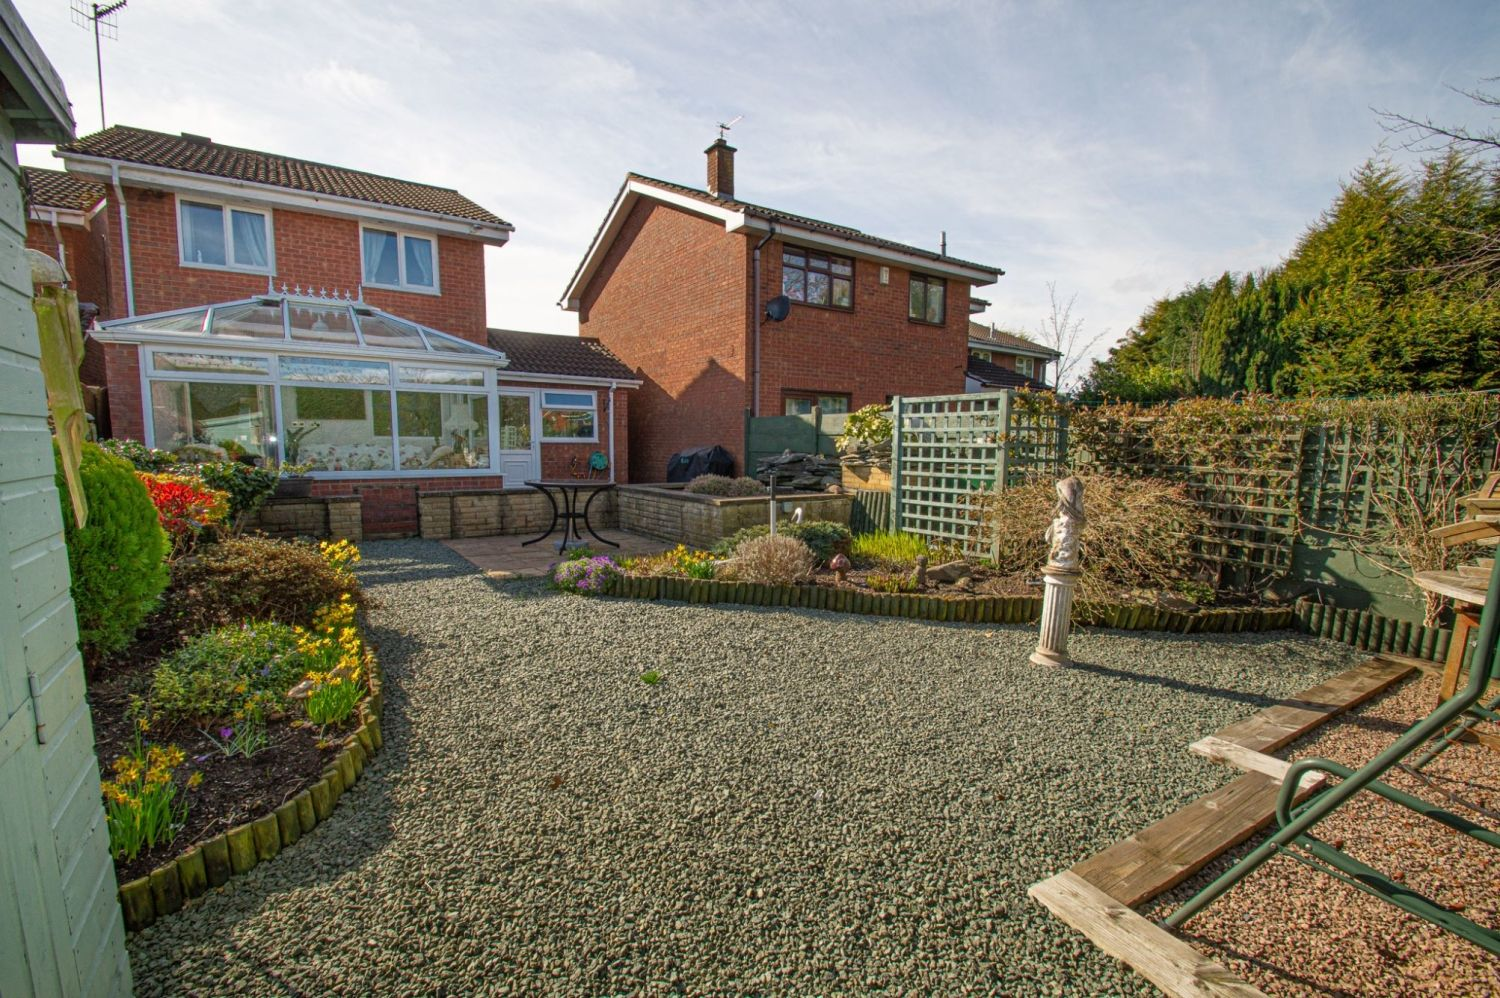 3 bed detached for sale in Broomehill Close, Brierley Hill 17